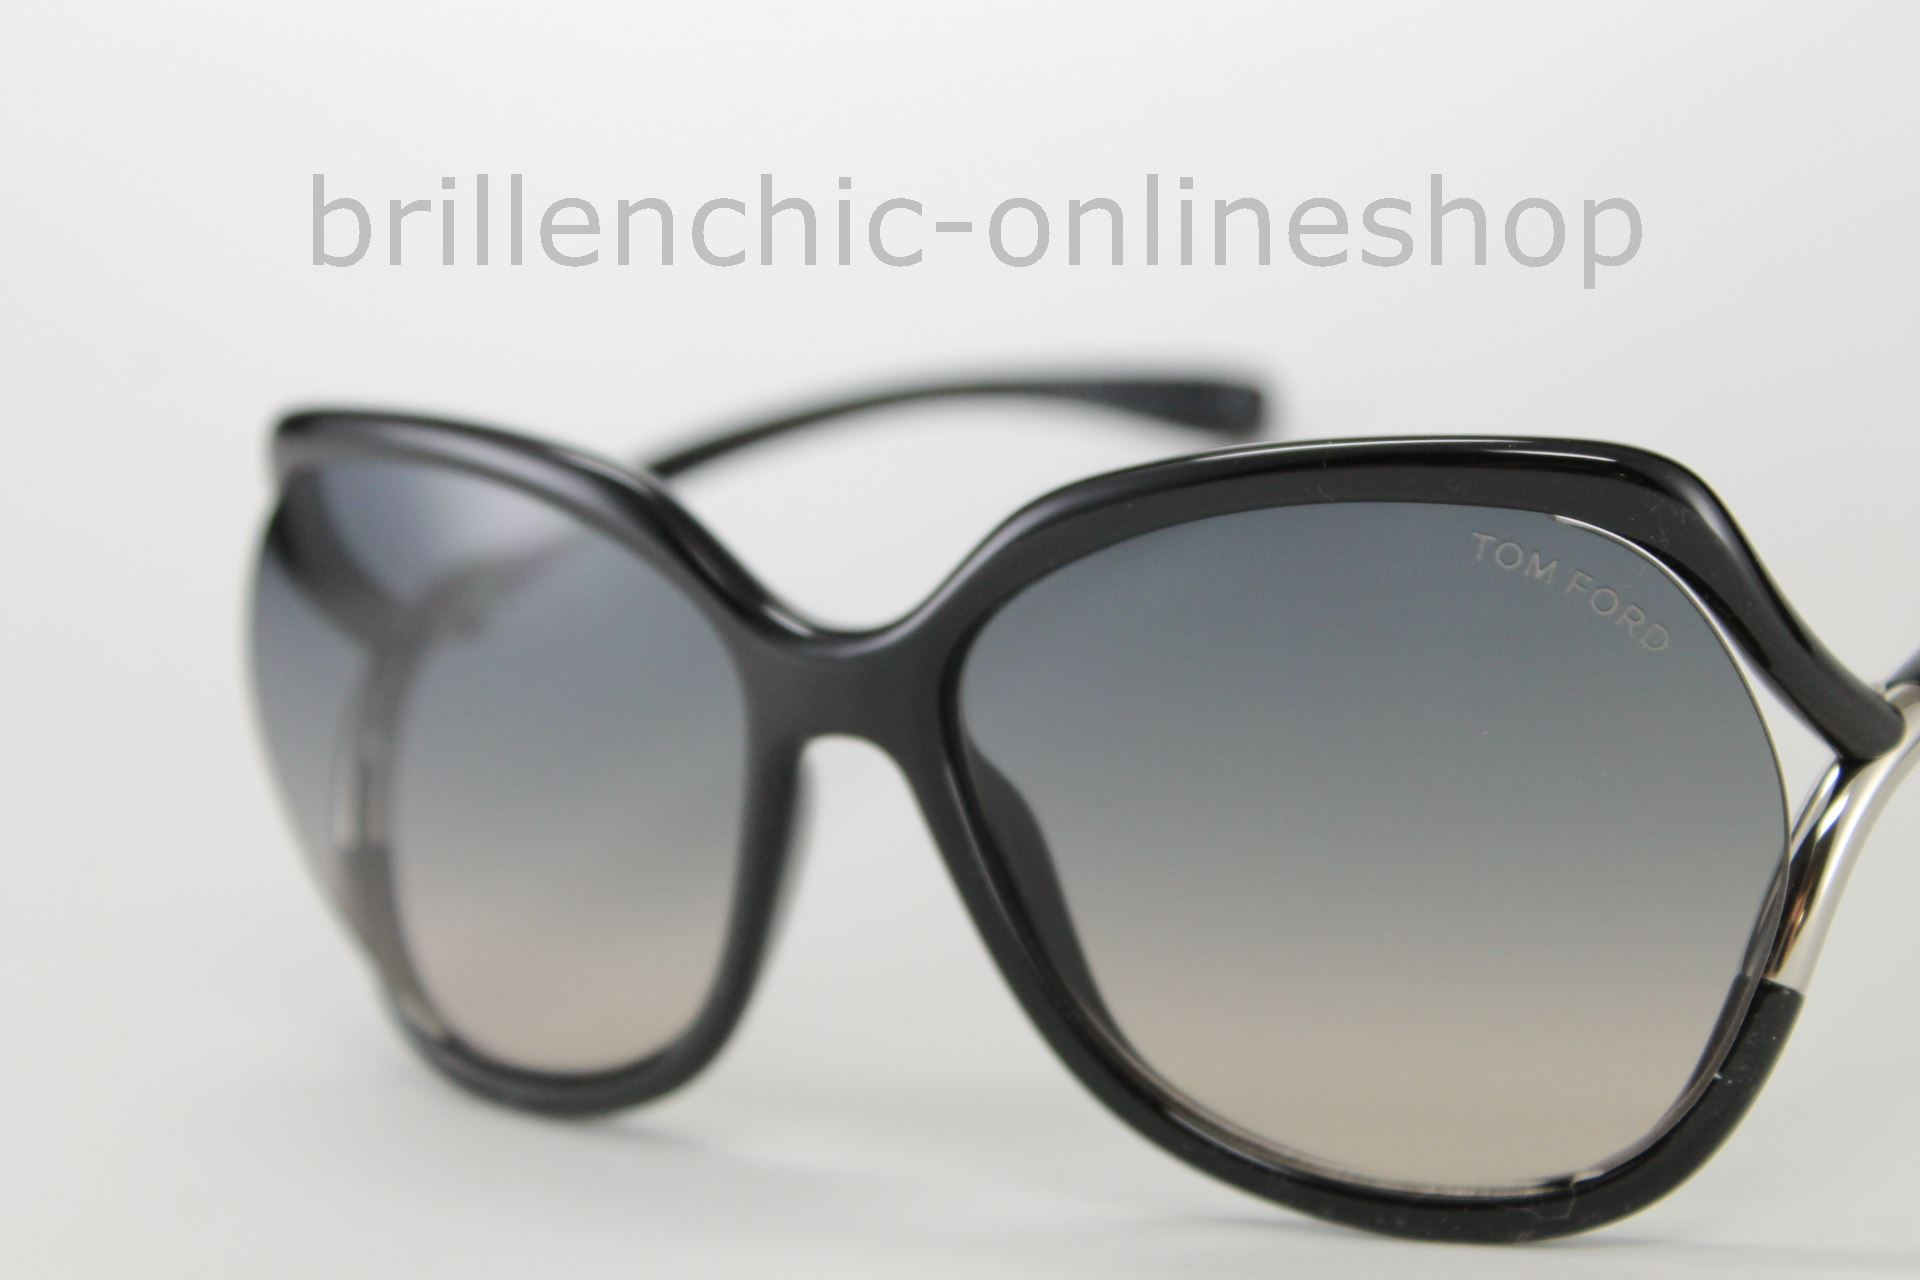 3c666a41e7b5c Brillenchic-onlineshop in Berlin - TOM FORD TF 578 01B ANOUK 02